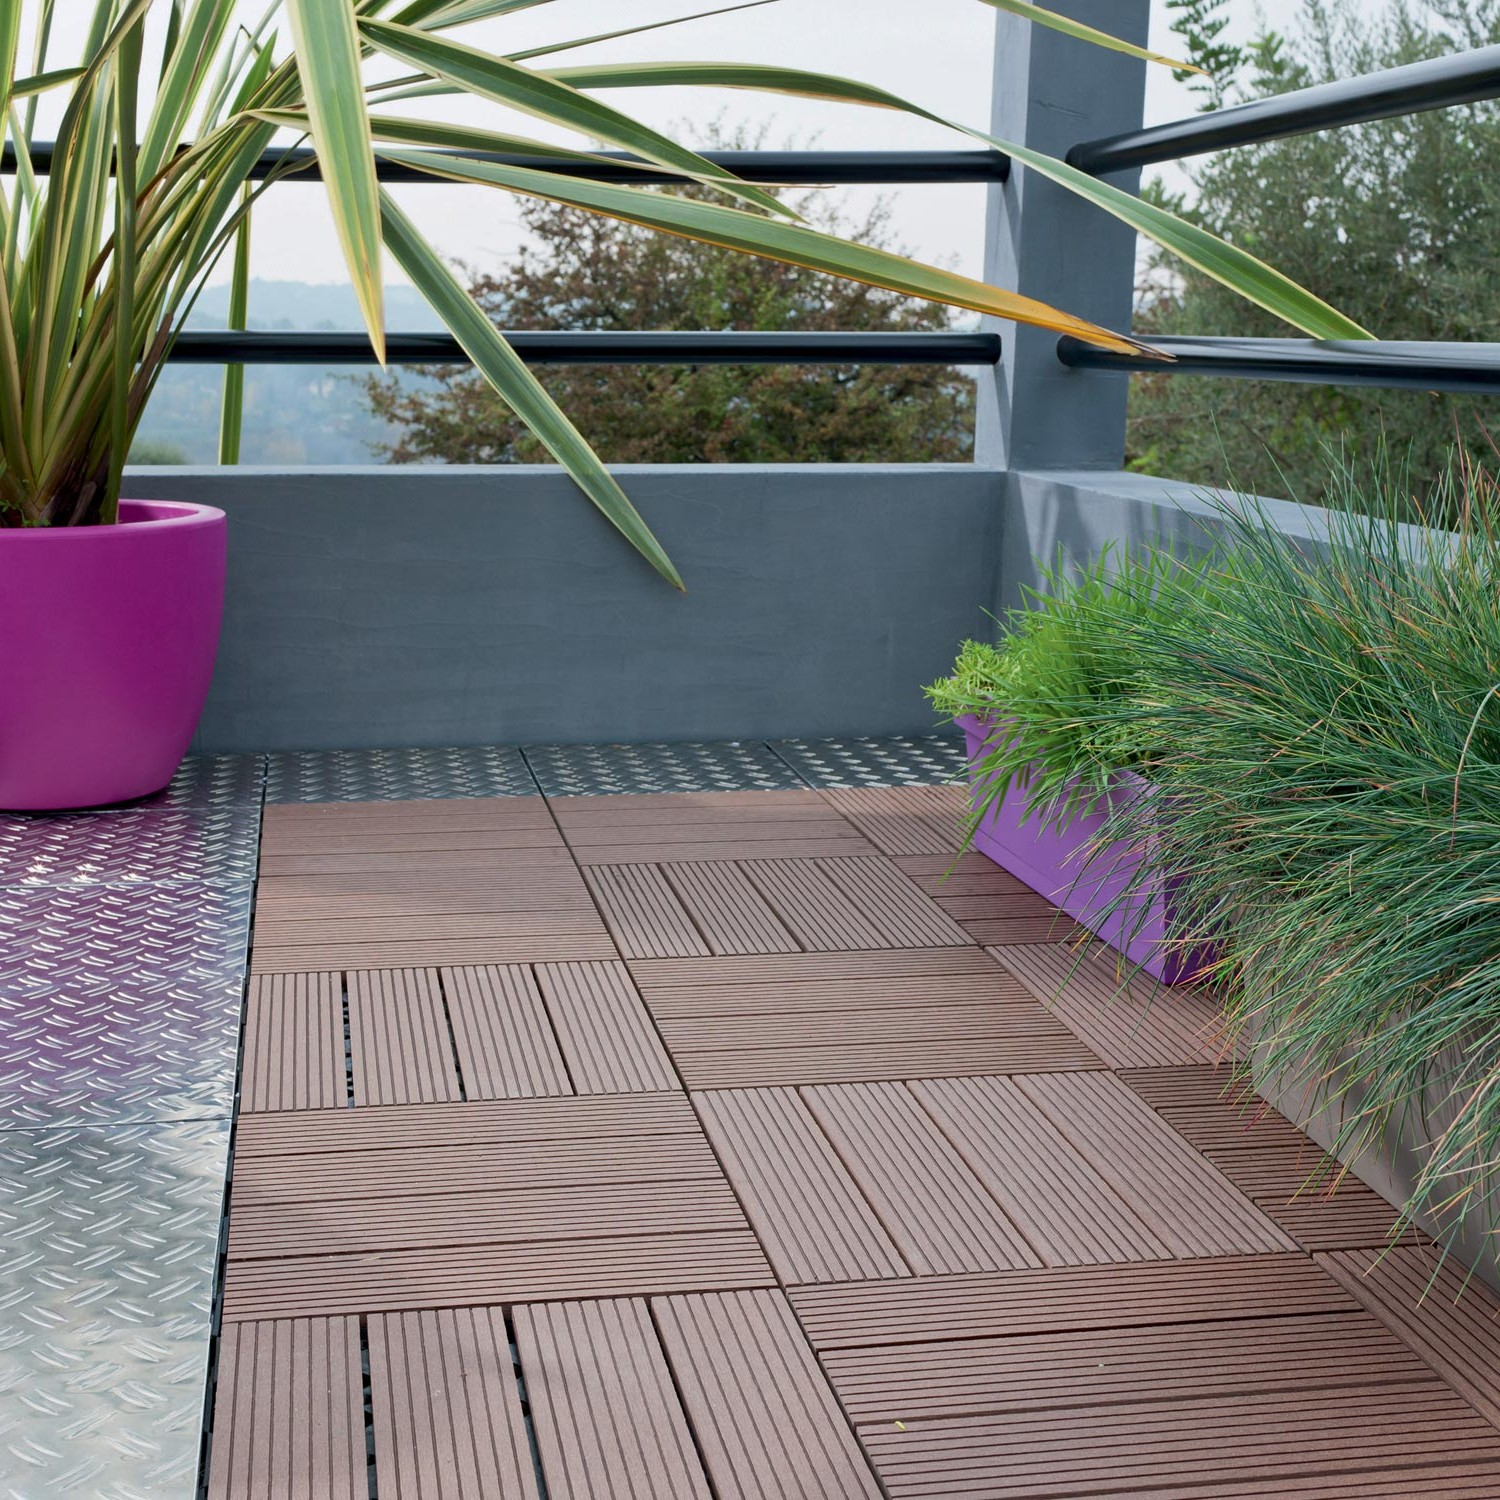 Carrelage clipsable pour balcon carrelage id es de for Carrelage balcon